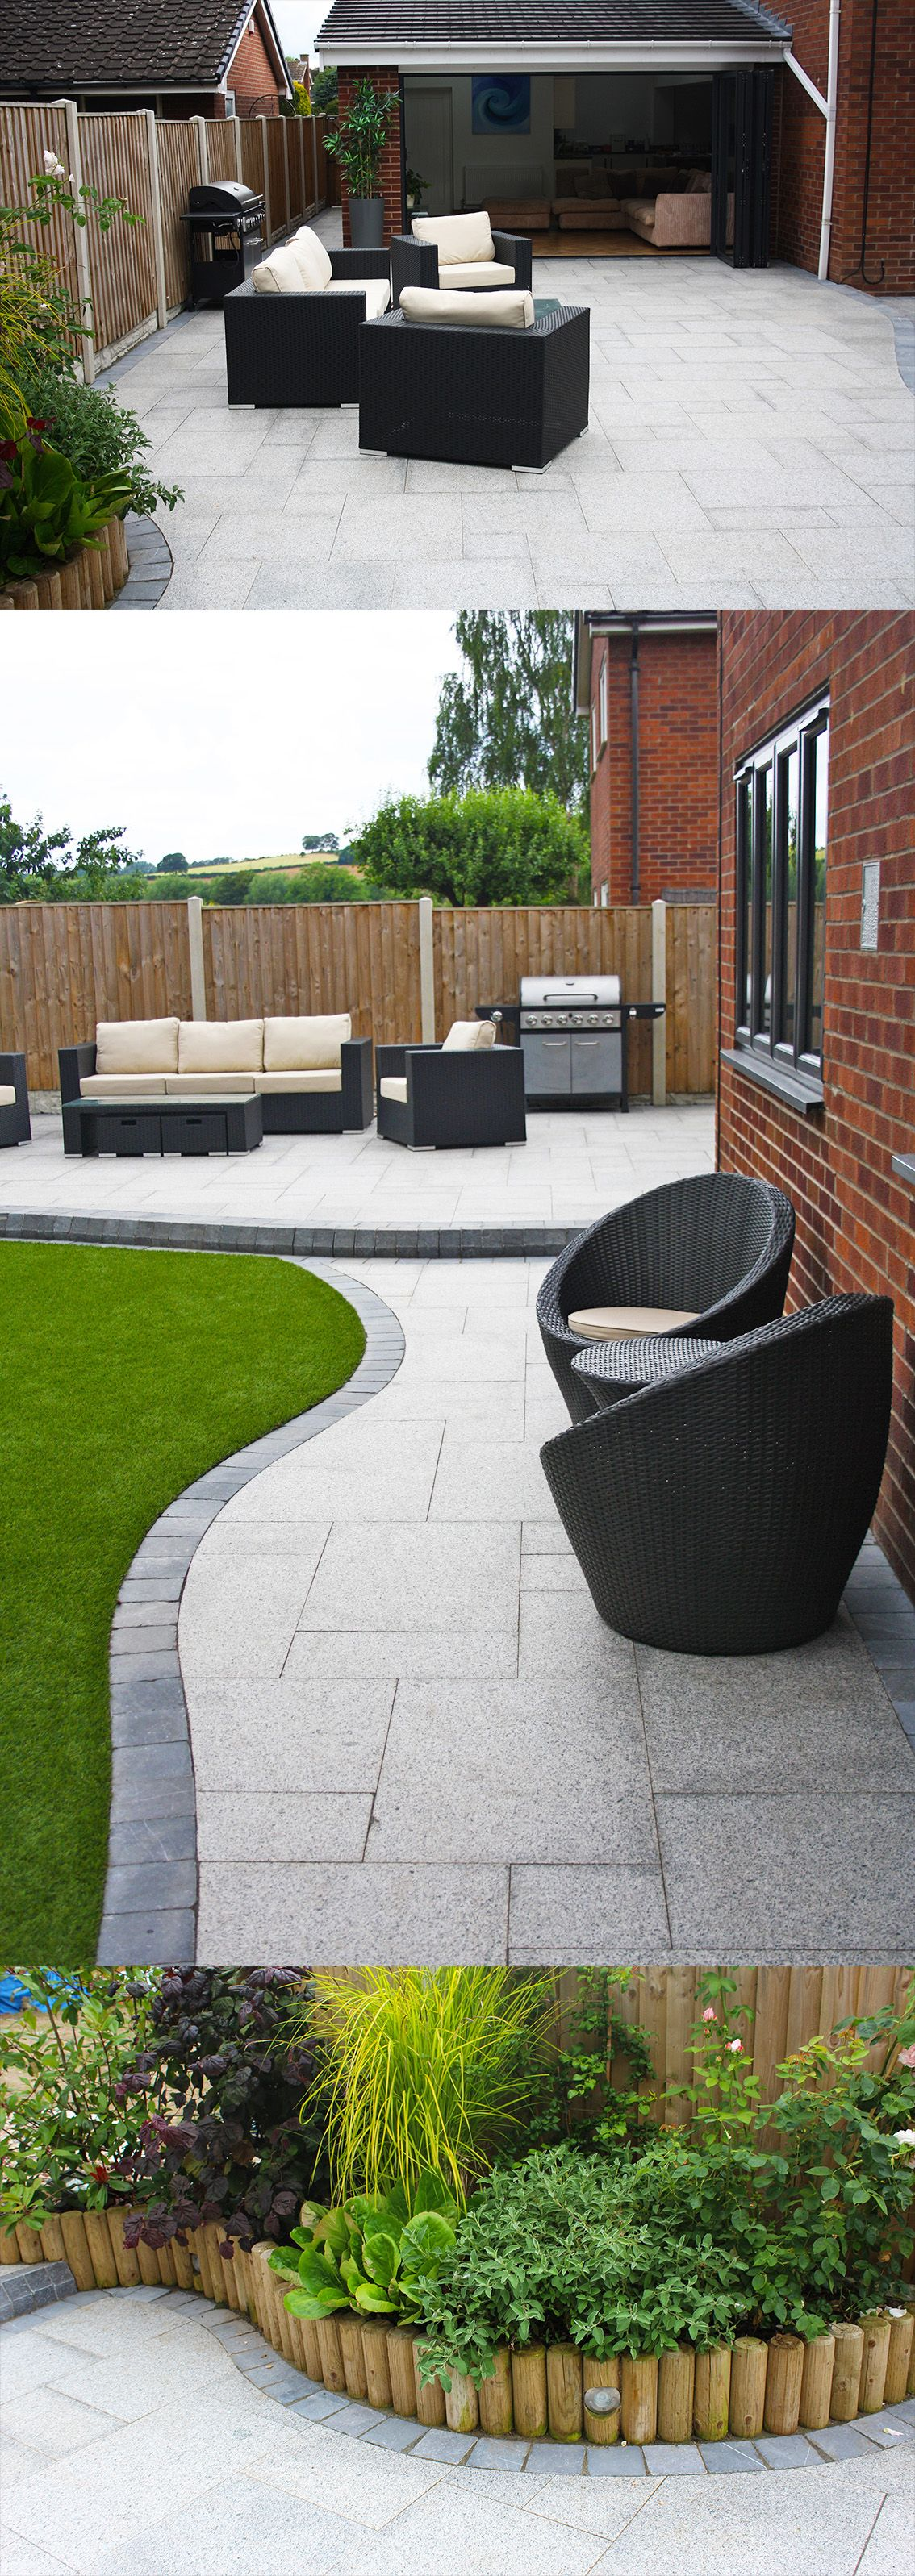 Stunning Modern Patio Birch Granite Paving Contemporary Garden Wicker Furniture Landscaping Garden Seat Patio Garden Modern Landscaping Garden Design